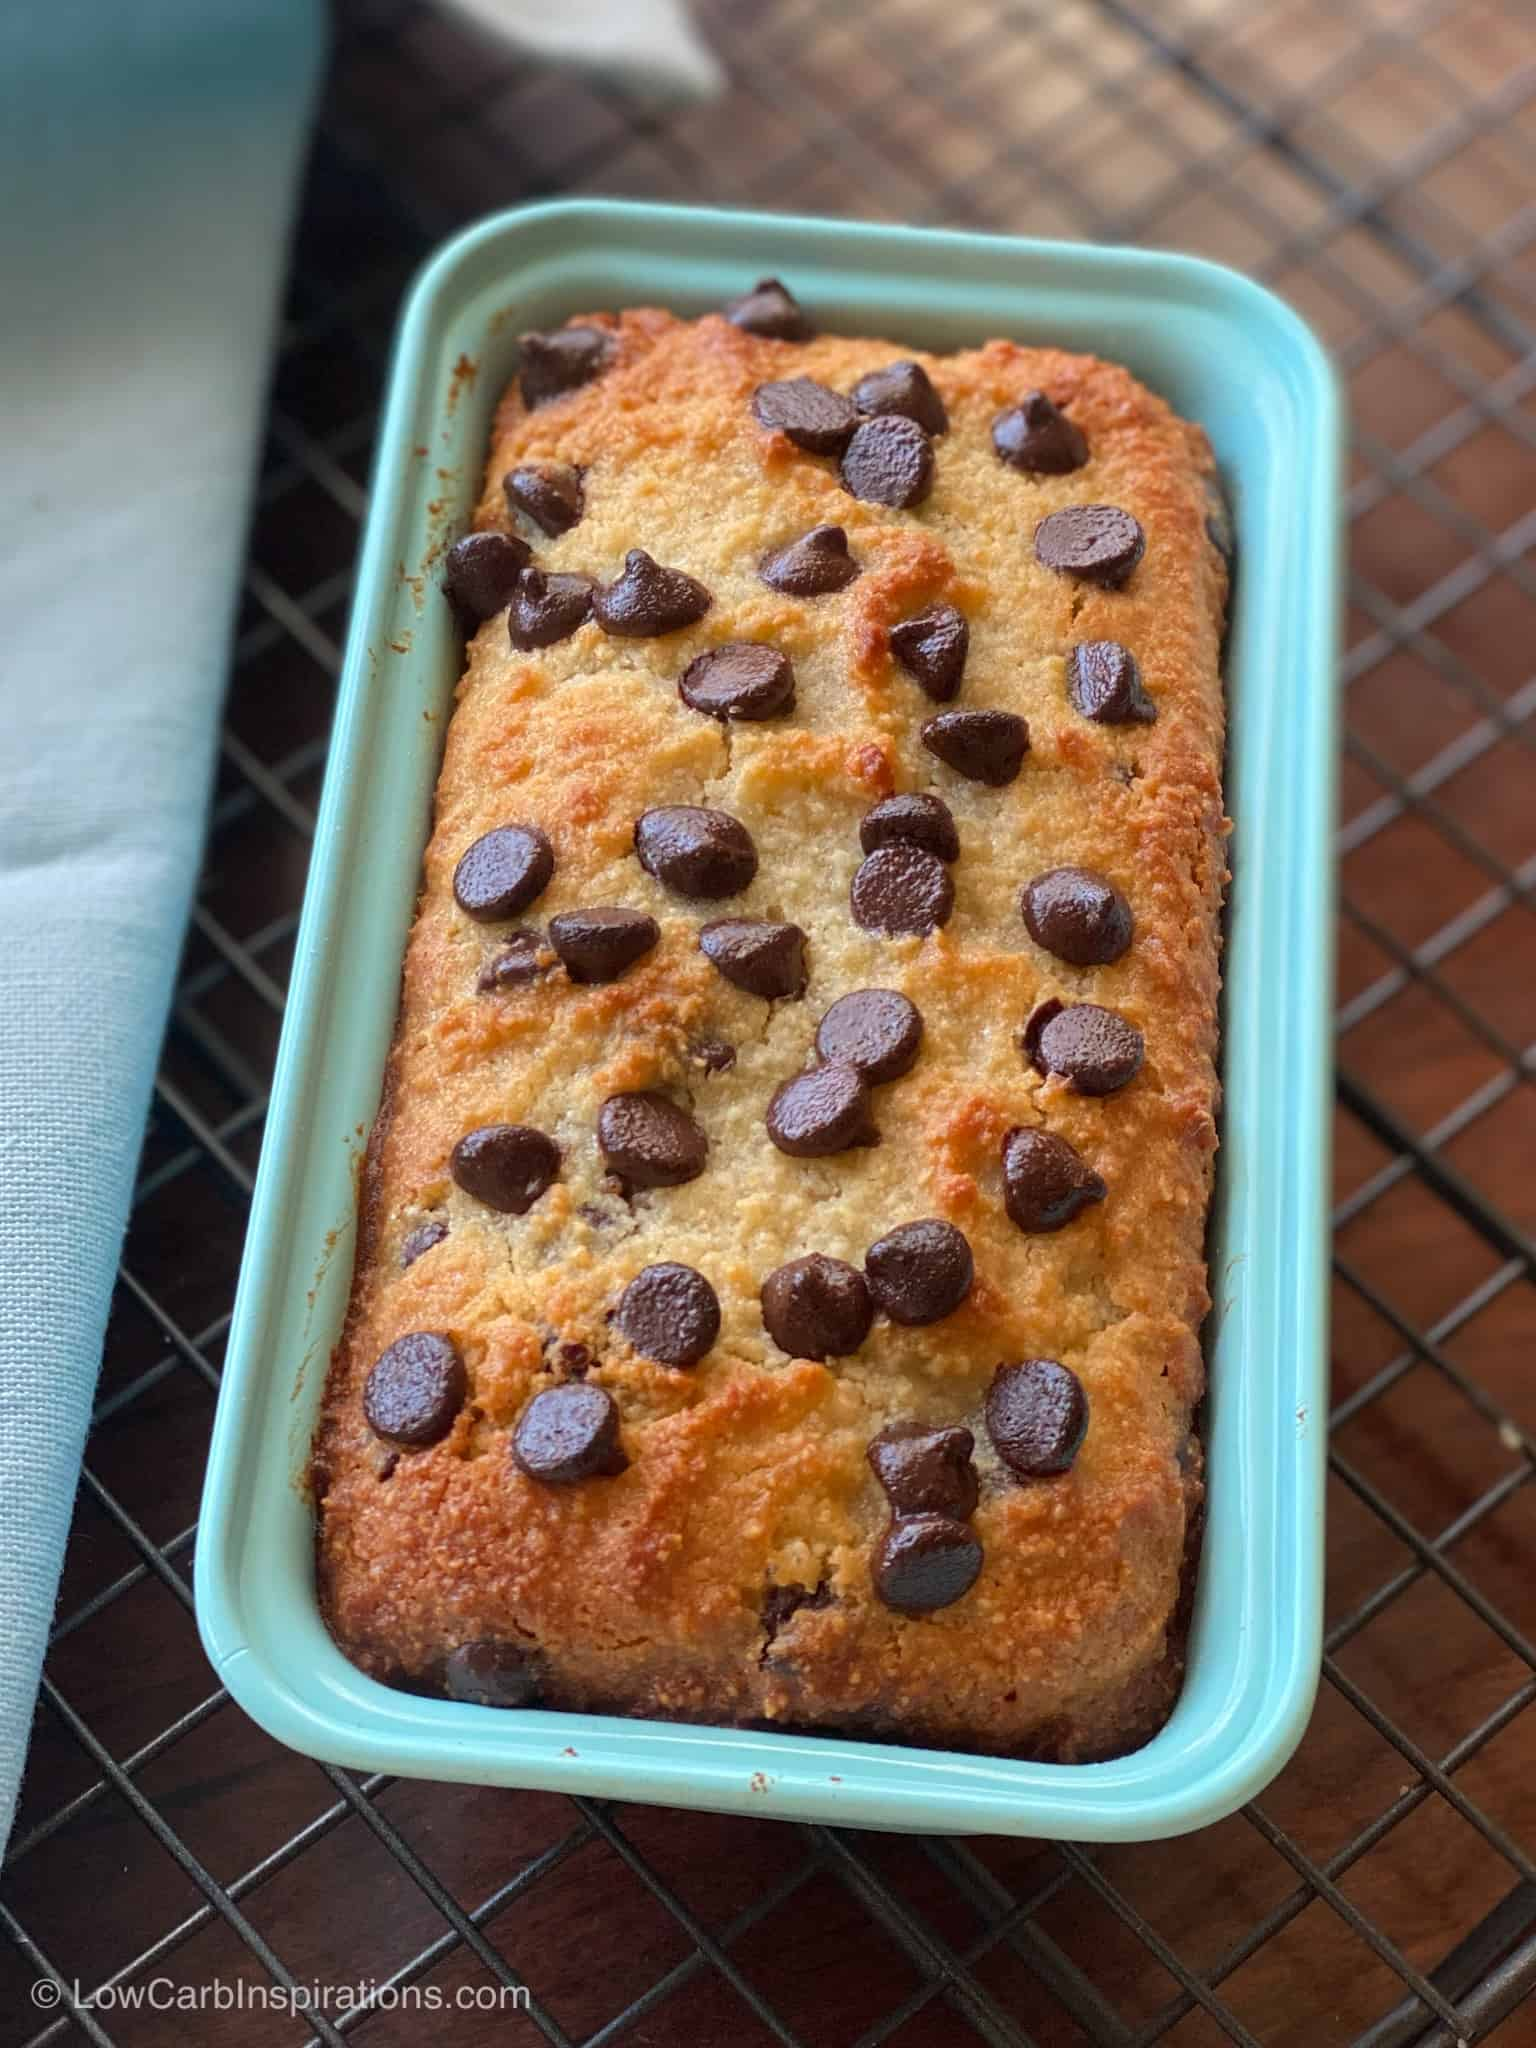 Baked Keto Chocolate Chip Banana Bread in a blue mini bread pan on a wire rack